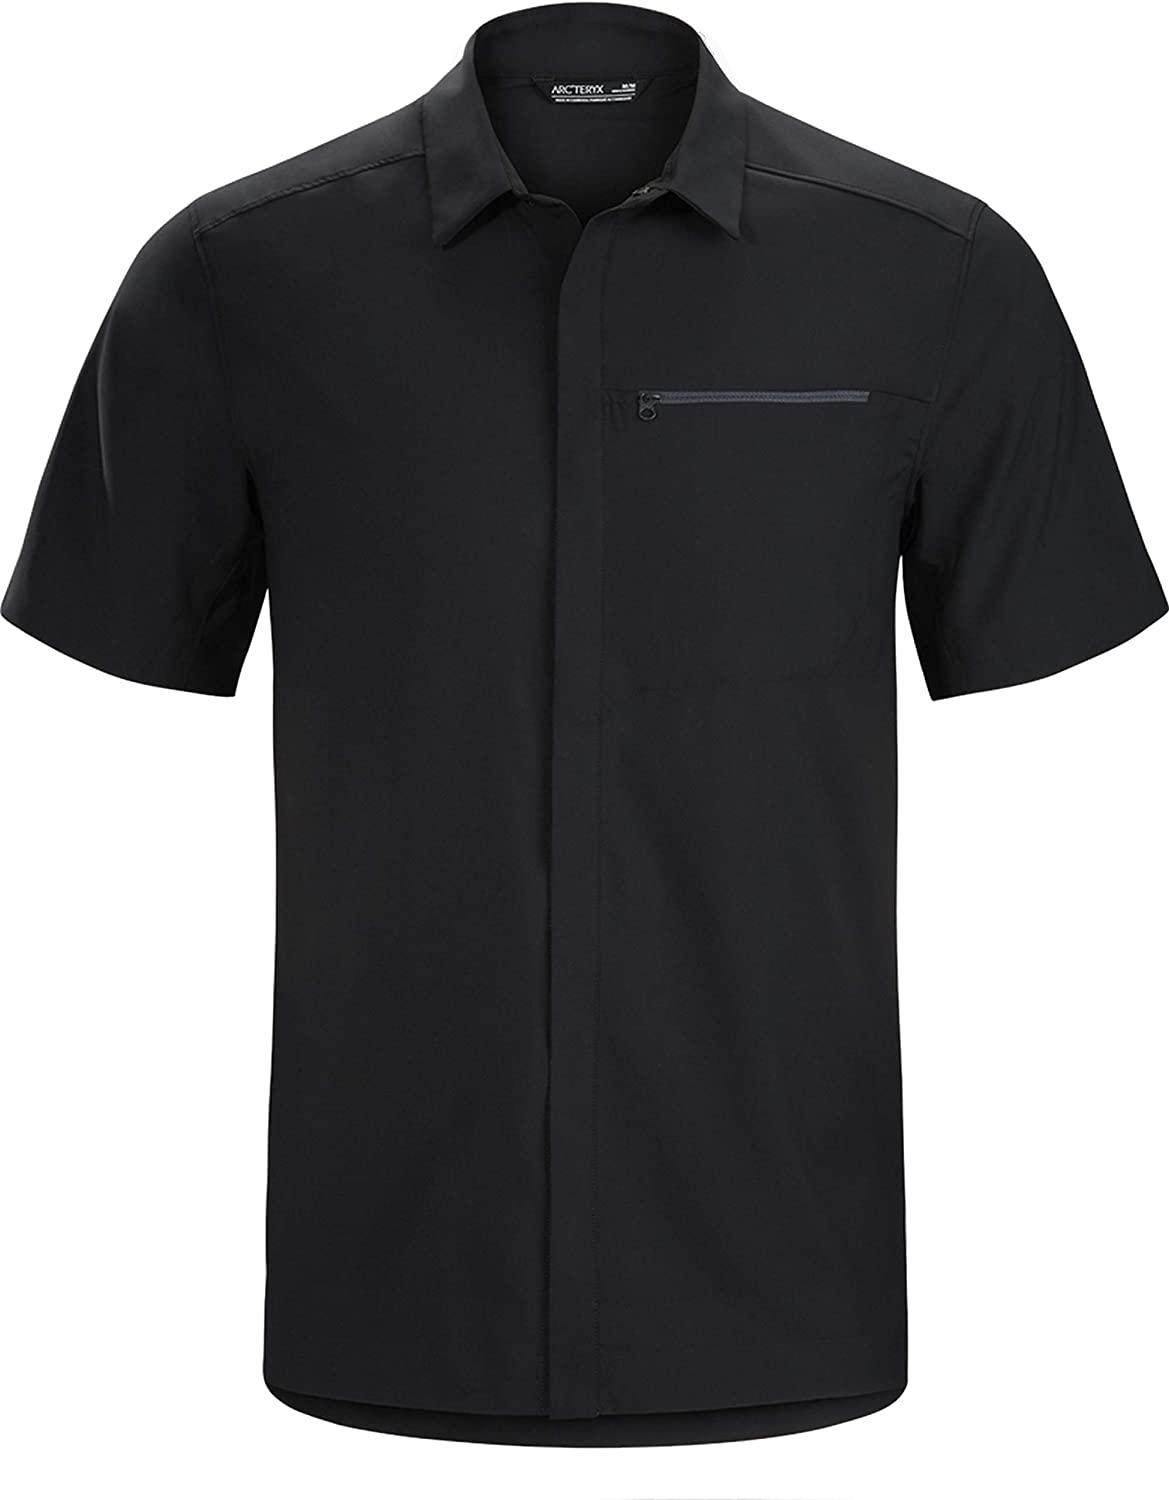 Arc'teryx Skyline Shirt SS Men's Top Everyday Luxury goods Snap Al sold out. Front